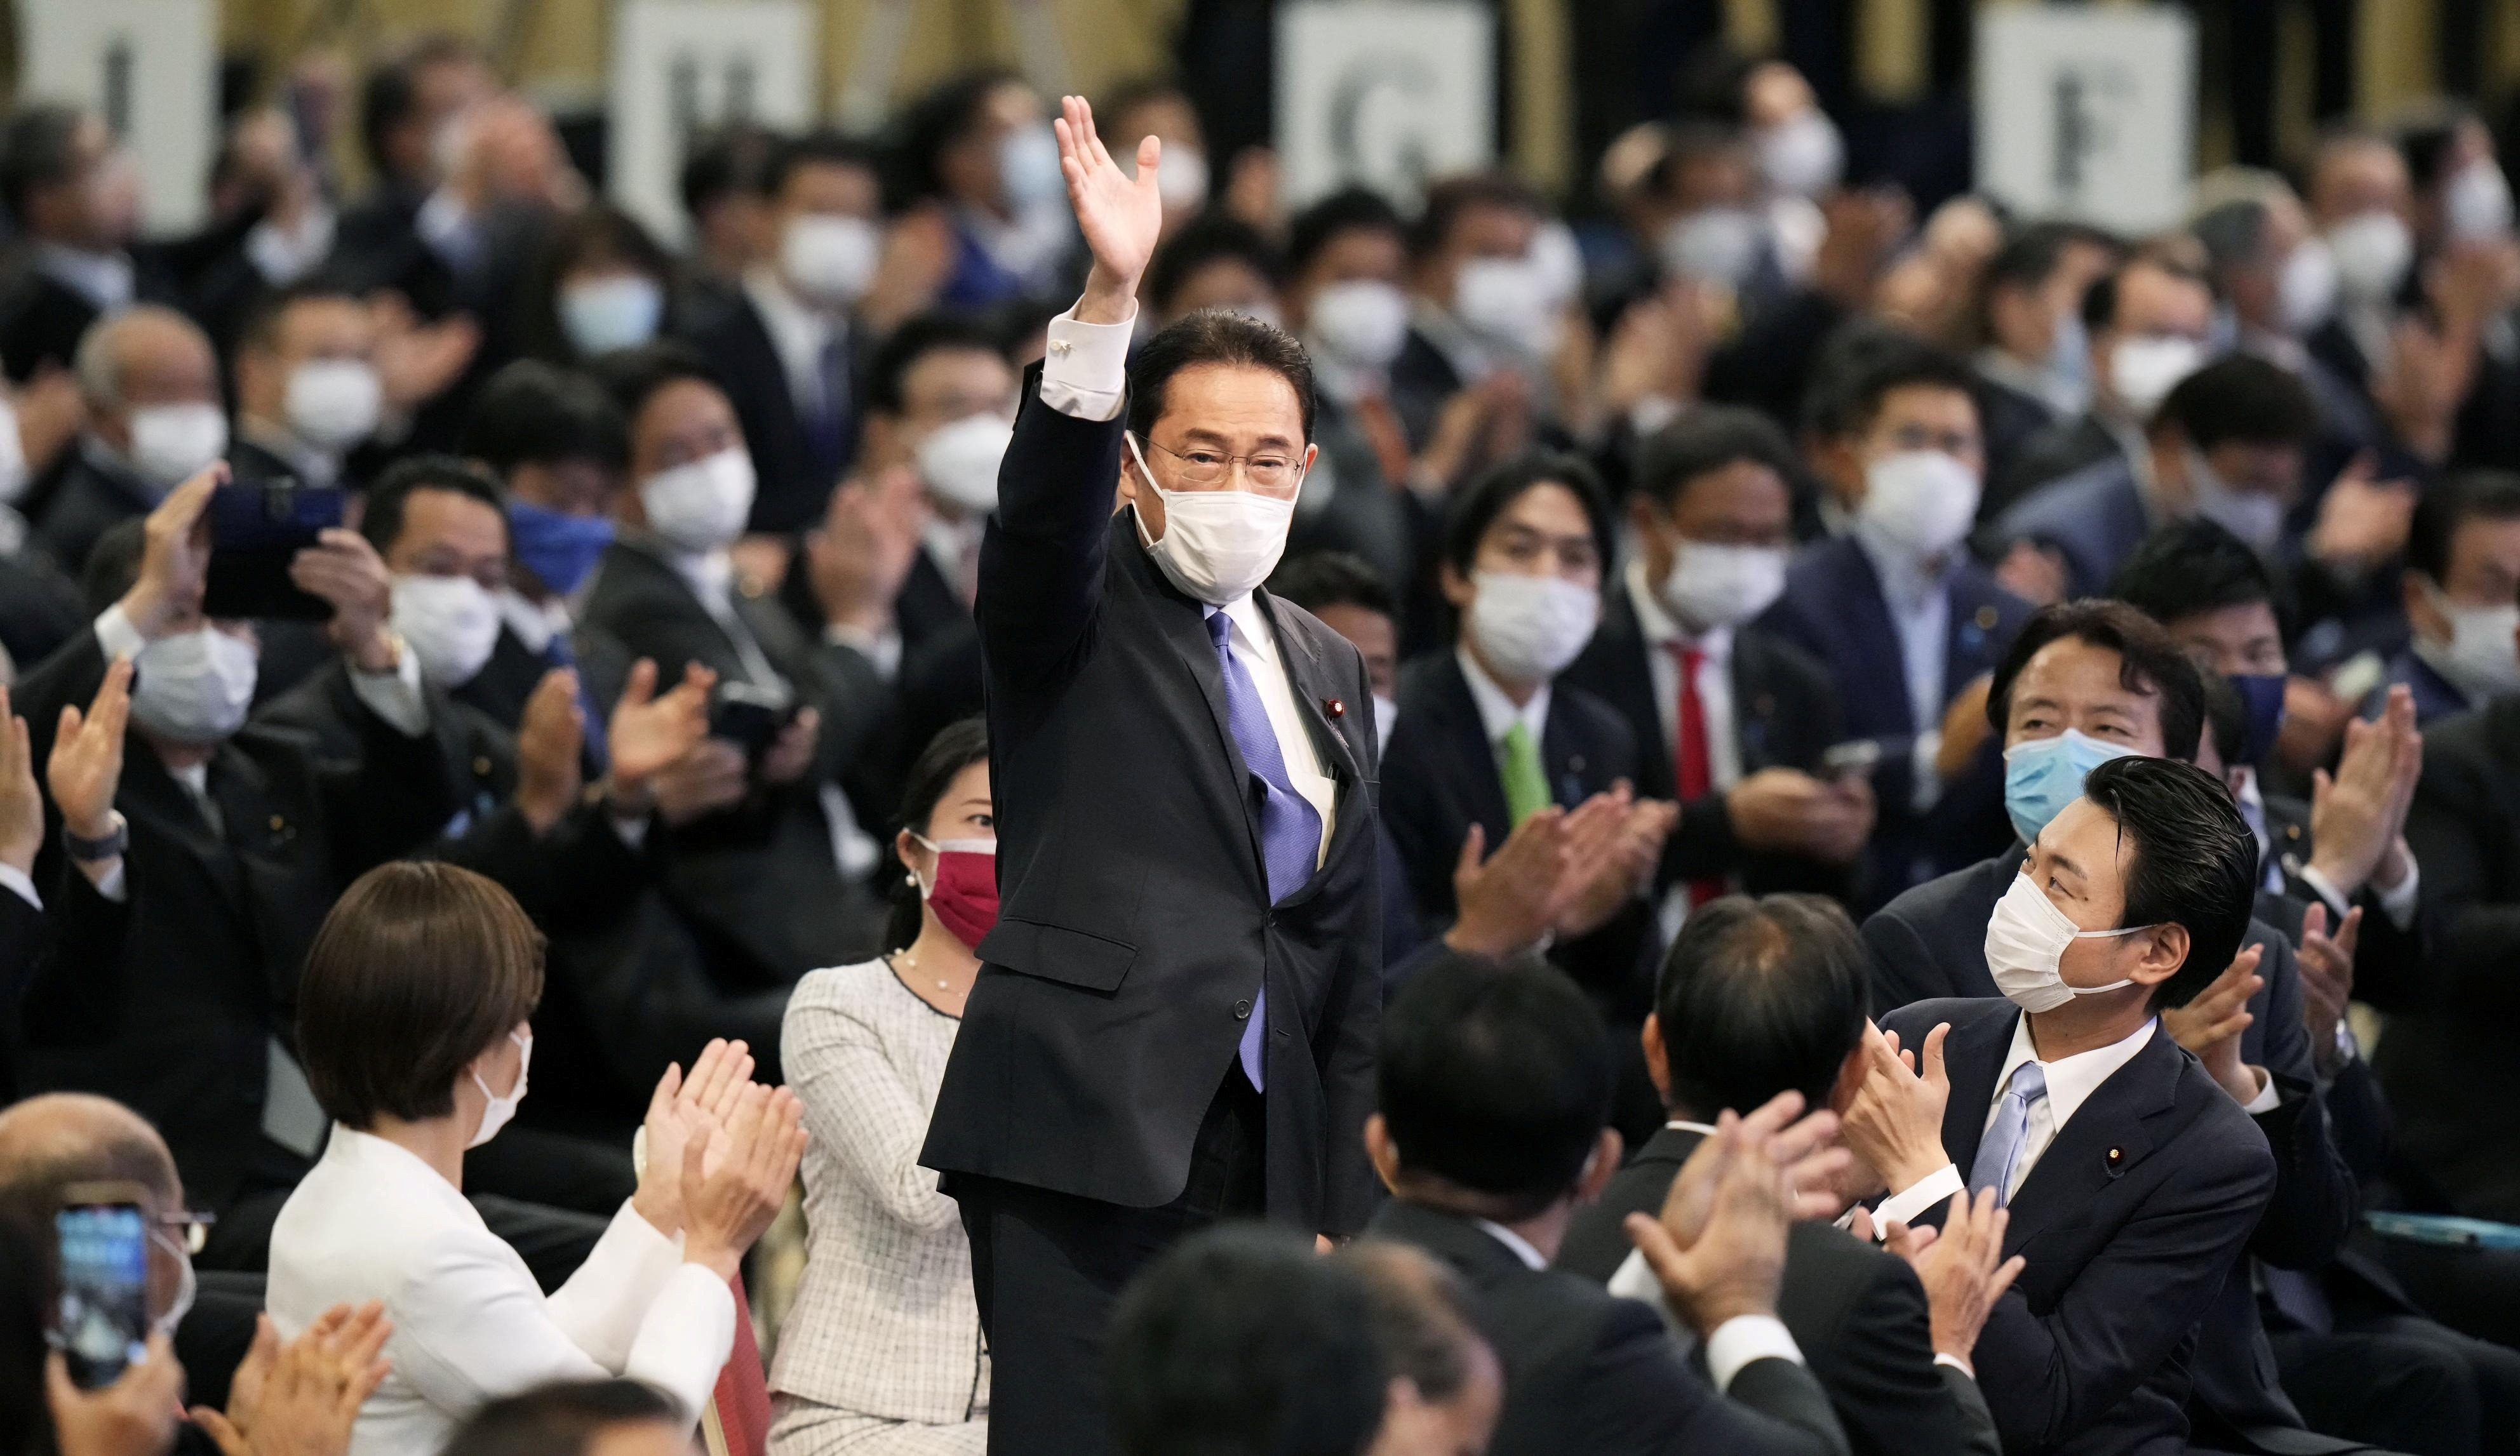 Former Japanese Foreign Minister Fumio Kishida gestures as he is elected as new head of the ruling party in the Liberal Democratic Party's (LDP) leadership vote in Tokyo, Japan September 29, 2021. Kyodo/via REUTERS